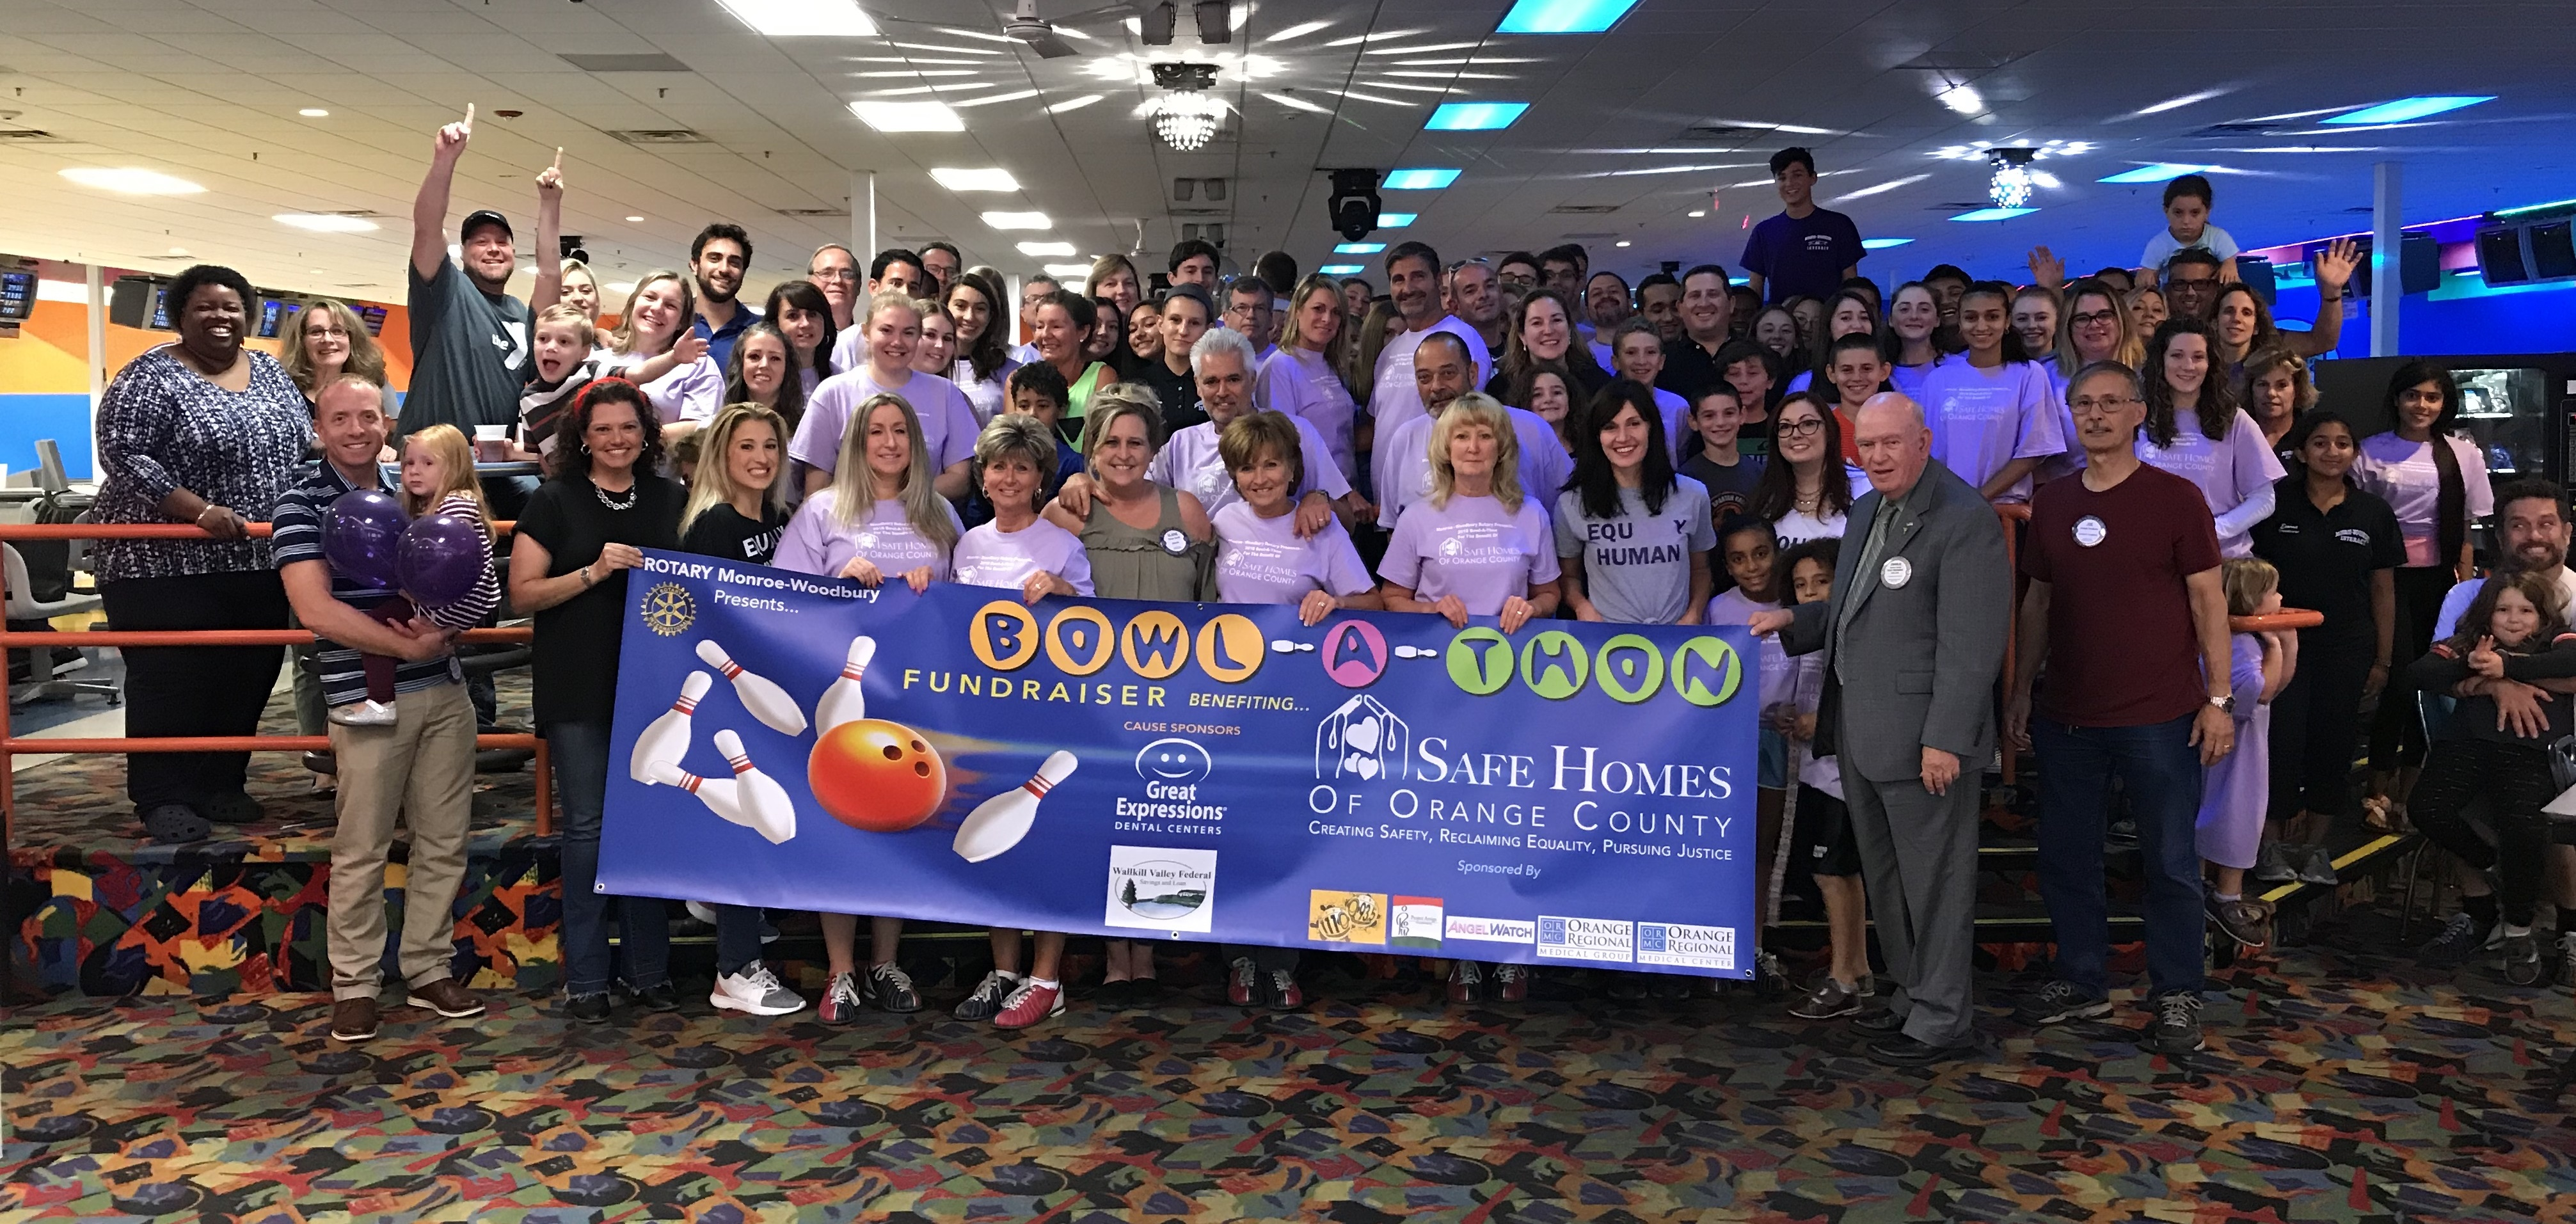 Monroe-Woodbury Rotary's 4th Annual Bowl-A-Thon to benefit Safe Homes